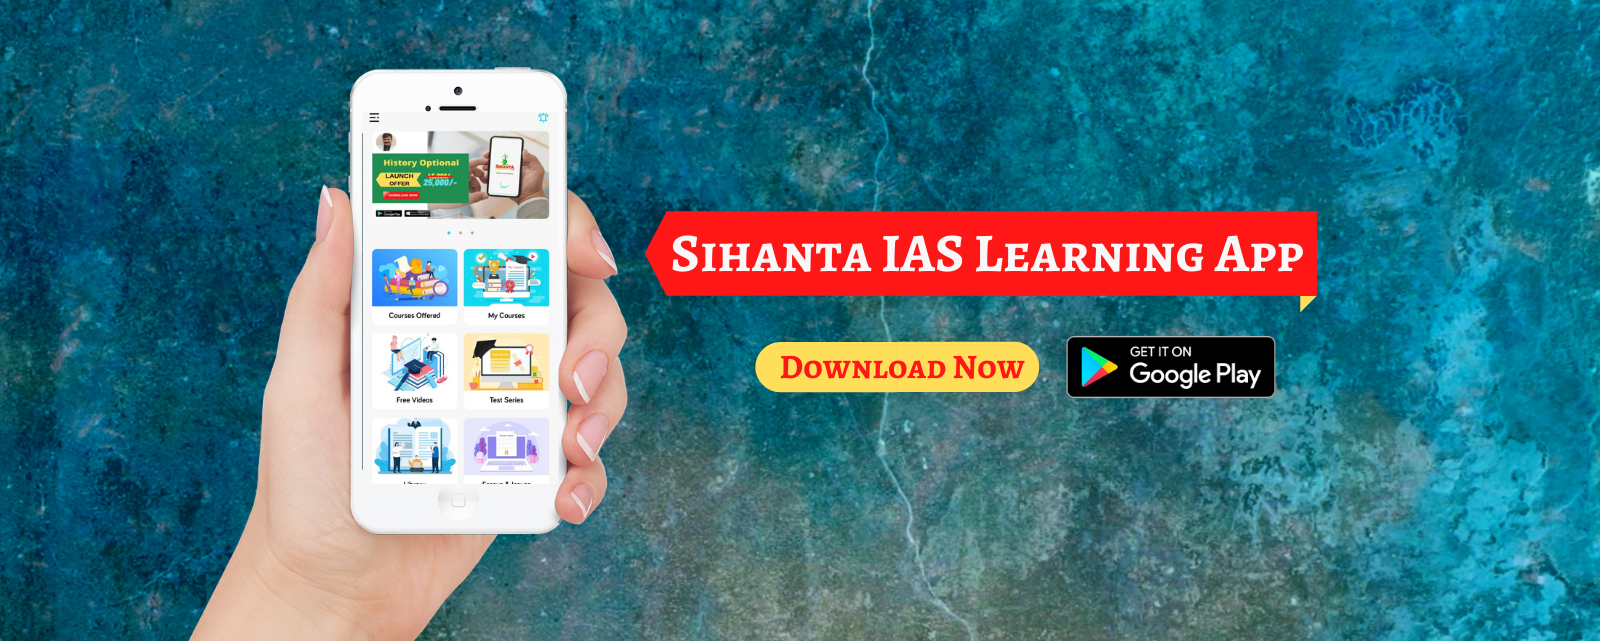 Sihanta IAS learning app